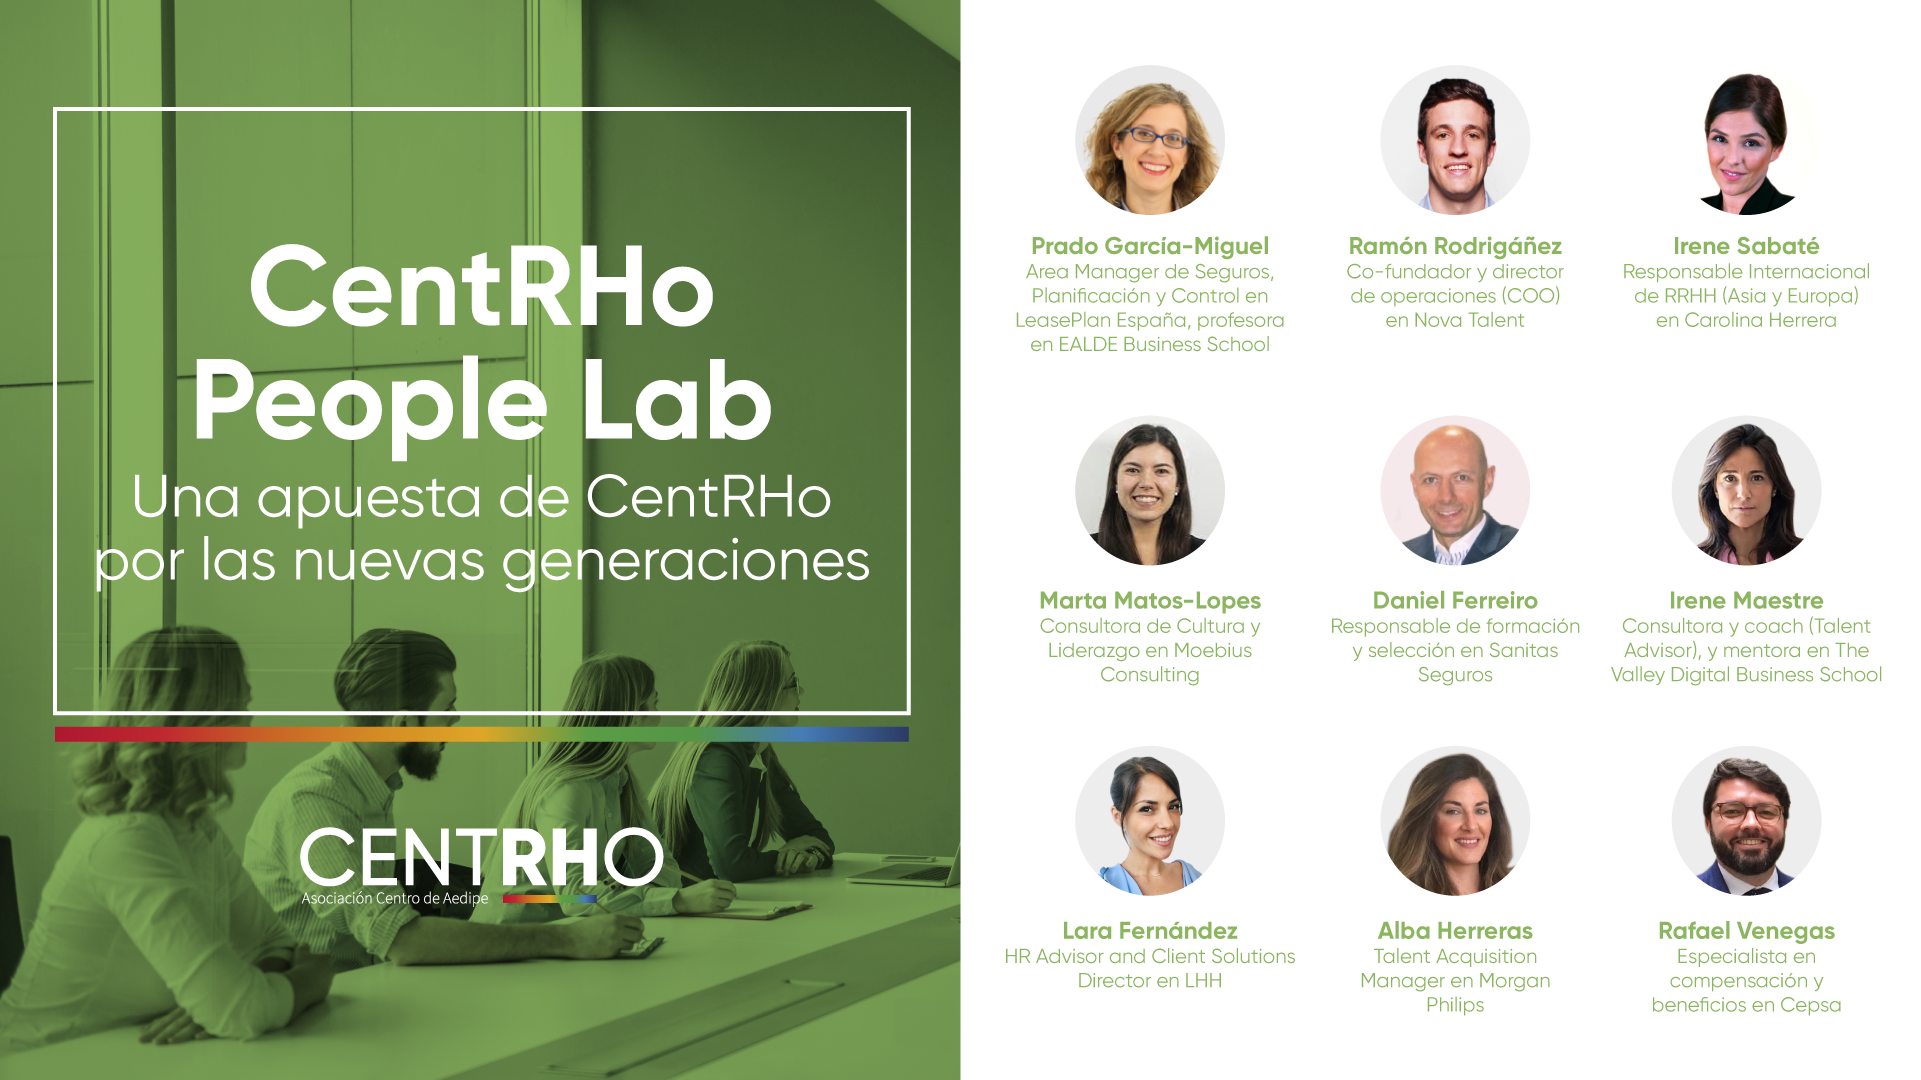 CentRHo People Lab